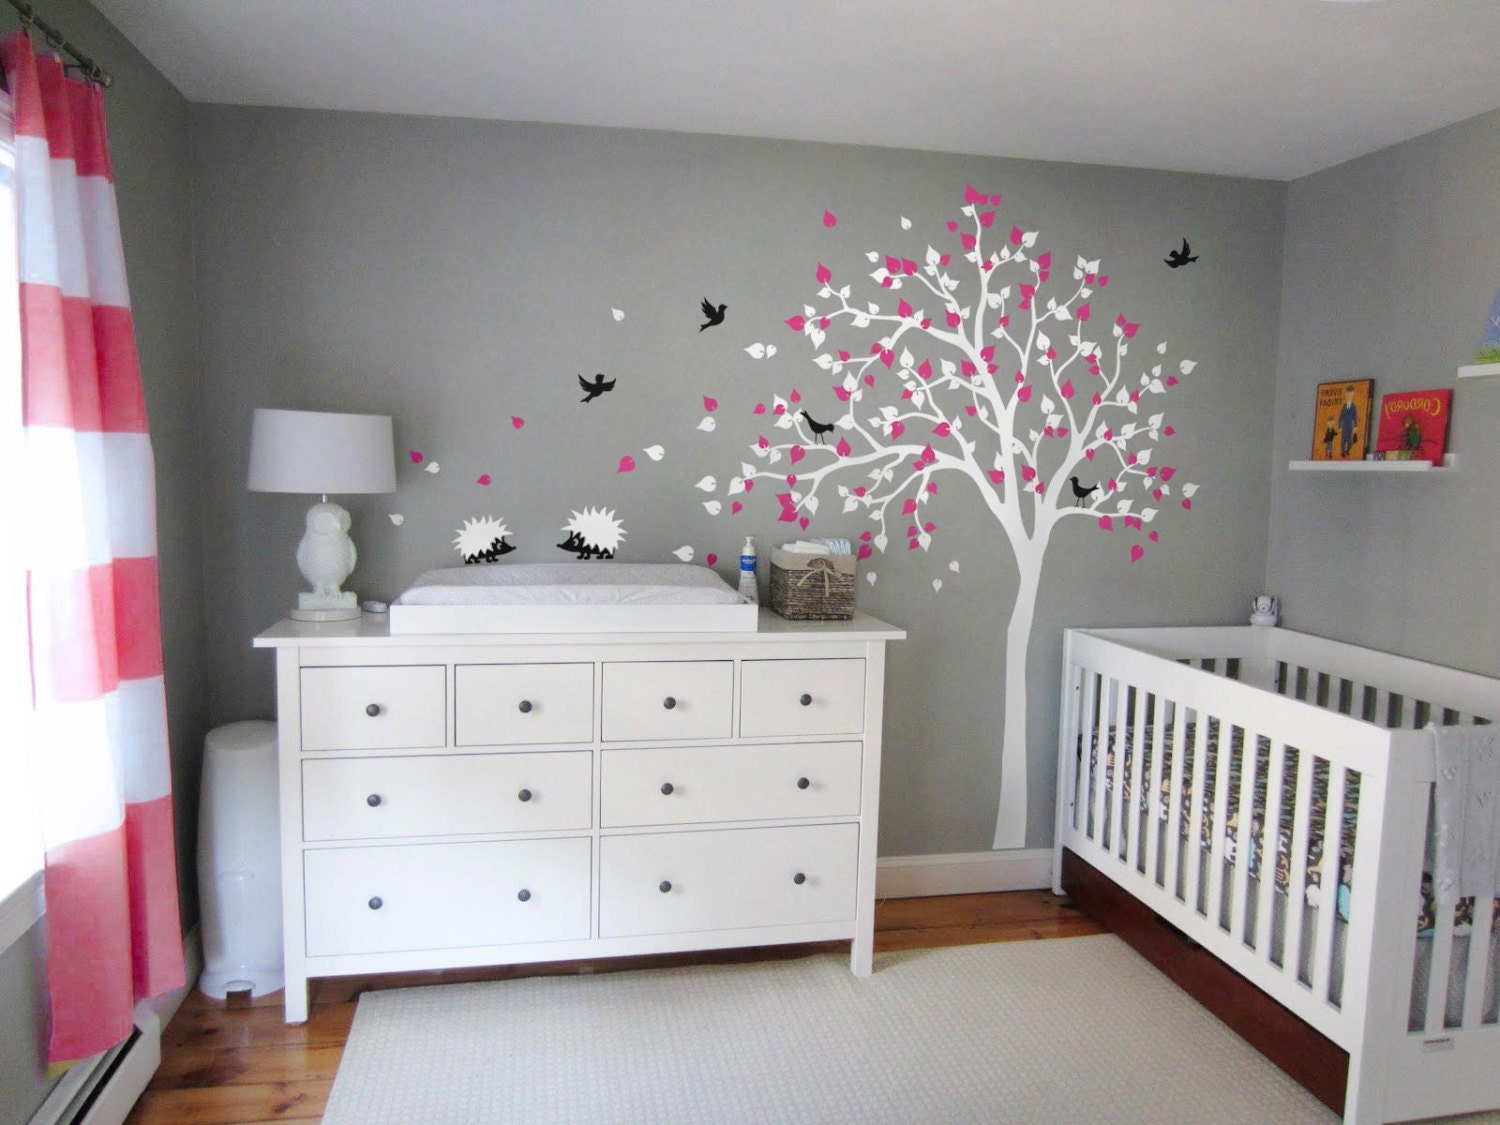 moderne baby kinderzimmer wand baum decal kinder. Black Bedroom Furniture Sets. Home Design Ideas